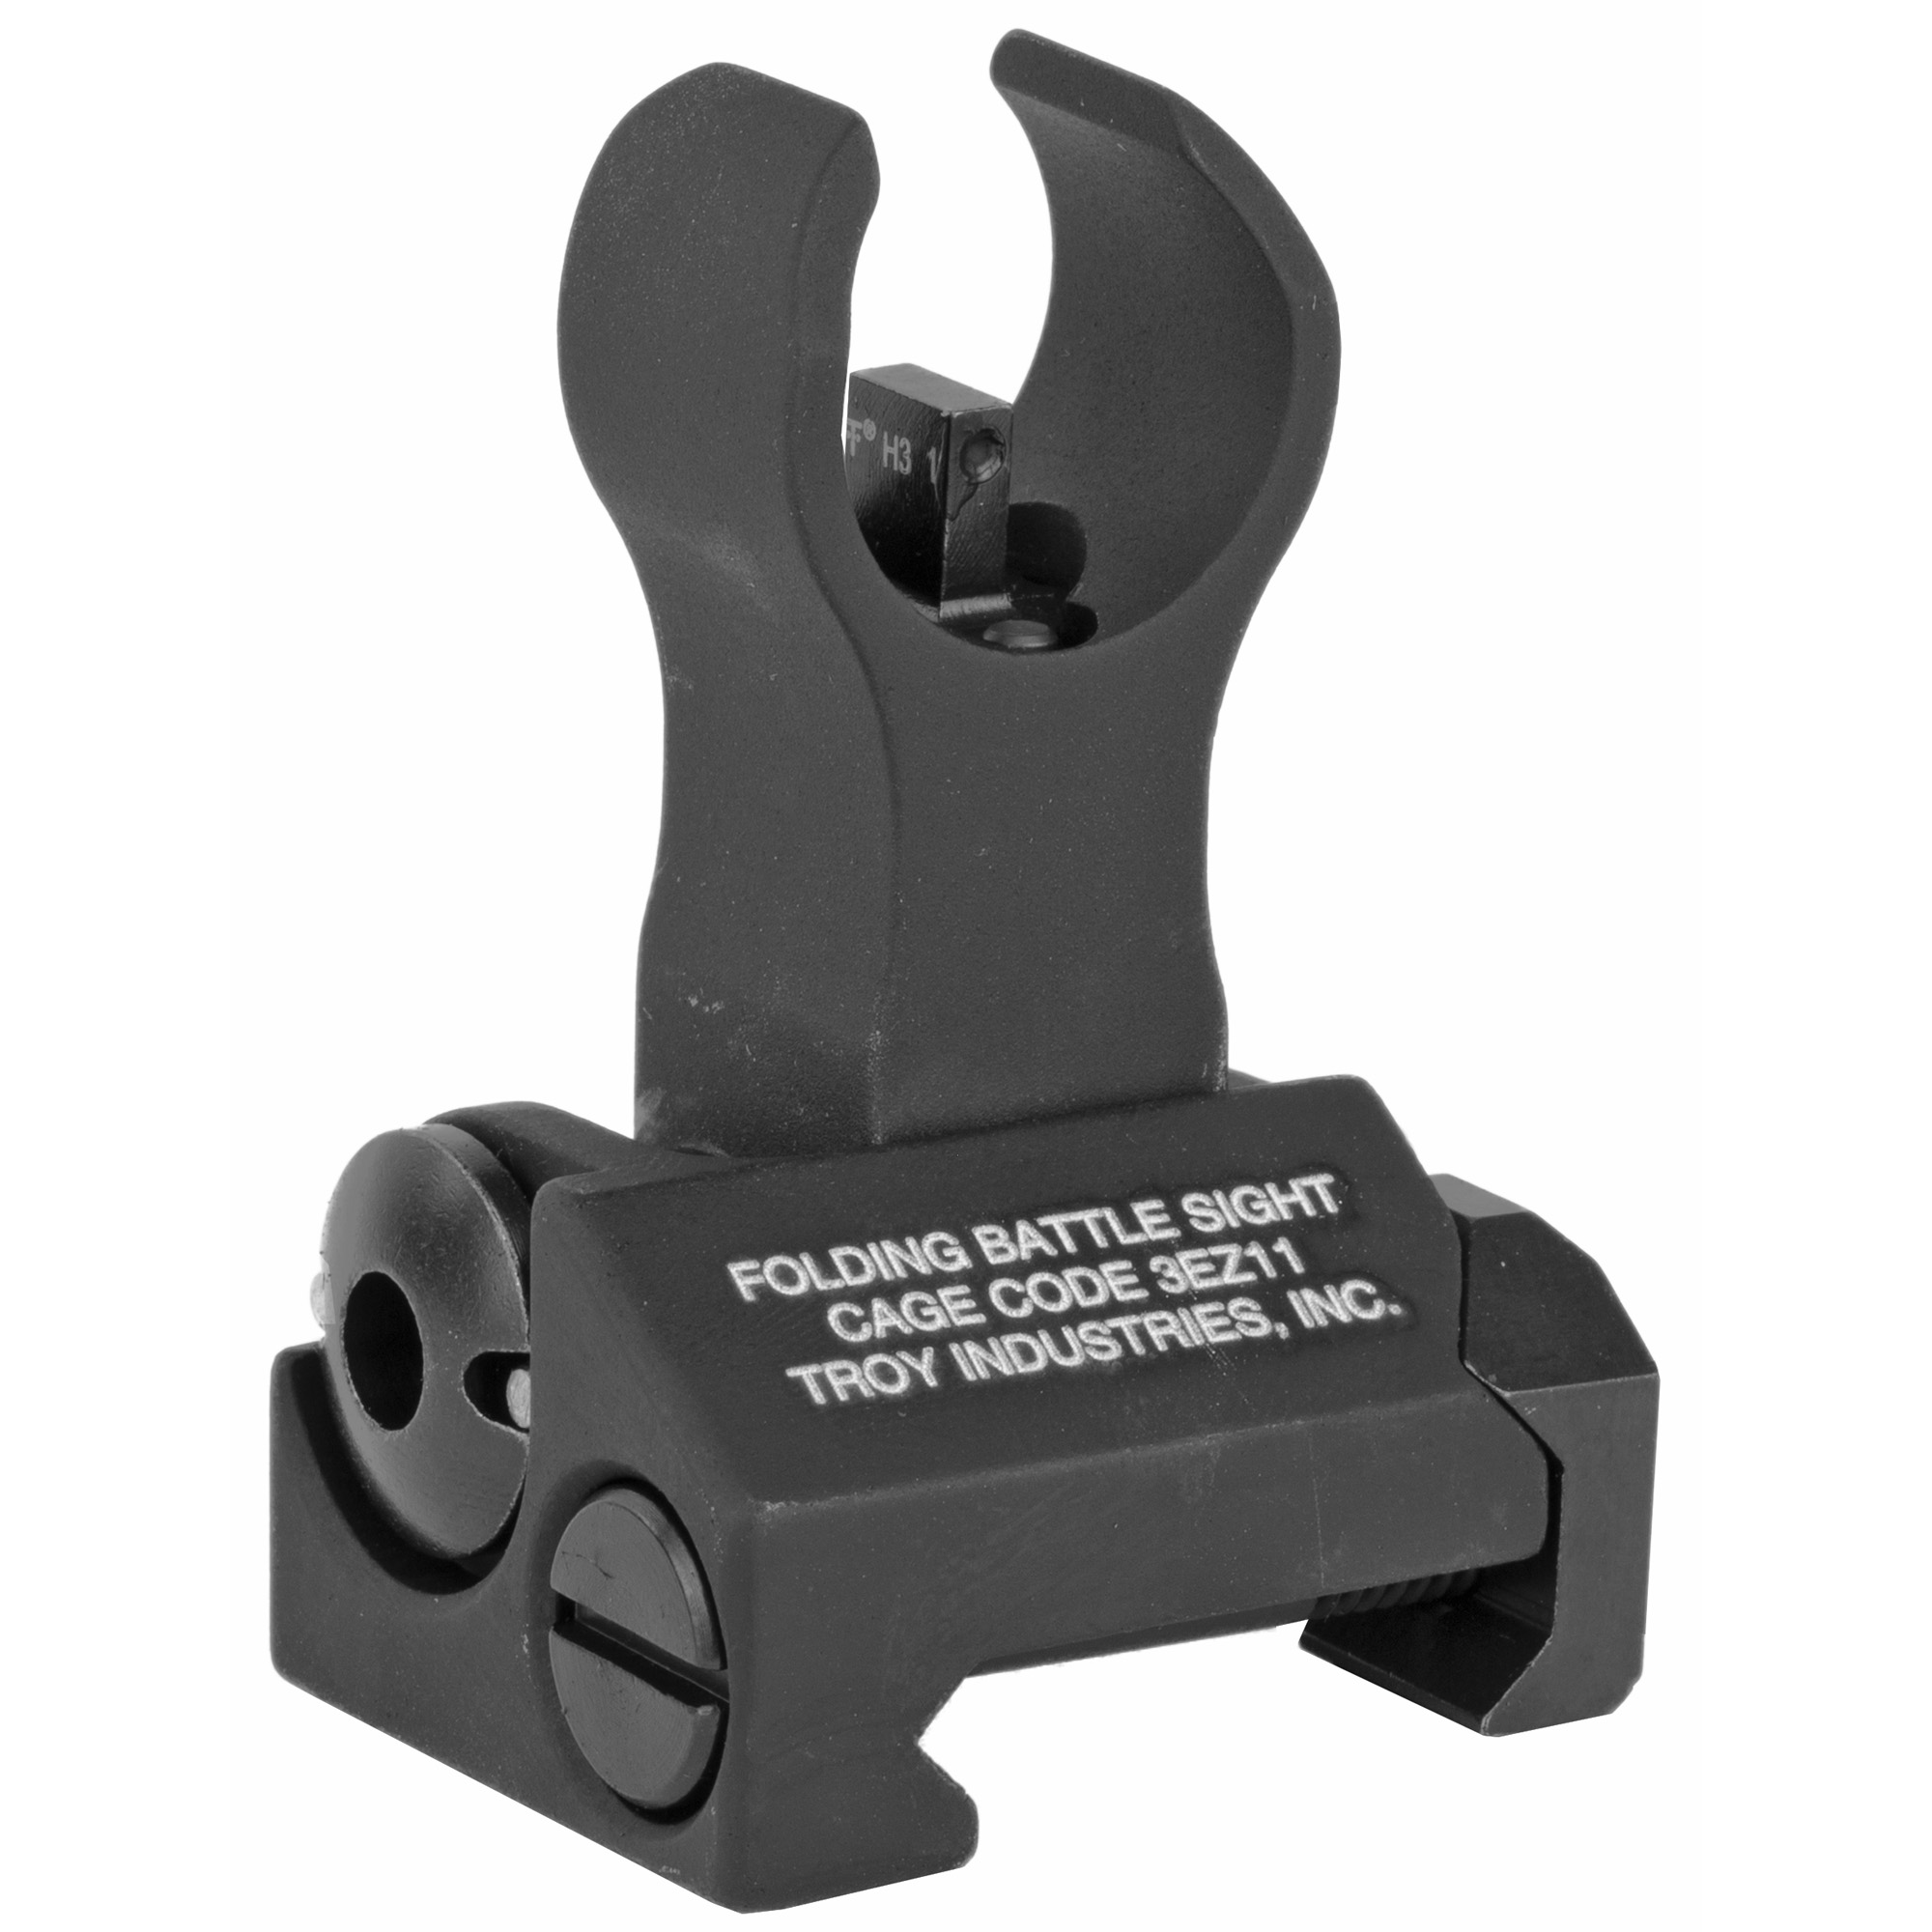 """Troy Industries' Tritium BattleSights(TM) are designed to eliminate the poor sight orientation that is typical in twilight. Tritium is a form of hydrogen that emits a continuous light source when batteries or electricity are not available. The front post is centered between two Tritium points of reference to allow proper alignment. Durability and dead-on accuracy make Troy BattleSights the hands-down first choice of Special Ops and Tactical Users Worldwide. Troy's HK Front Folding BattleSight is easy to install and deploy"""" with no levers or springs to fumble with. No tools required for adjustment."""